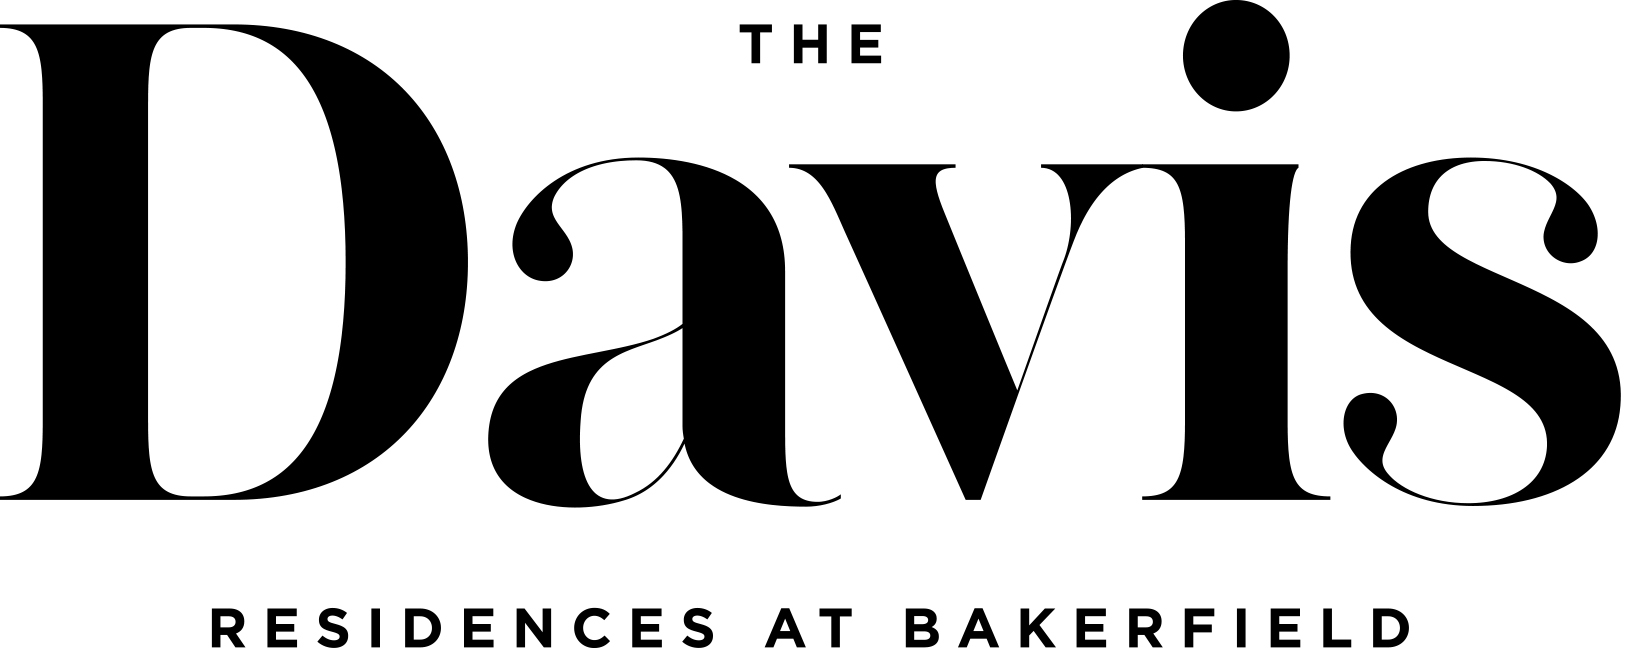 THE DAVIS RESIDENCES AT BAKERFIELD